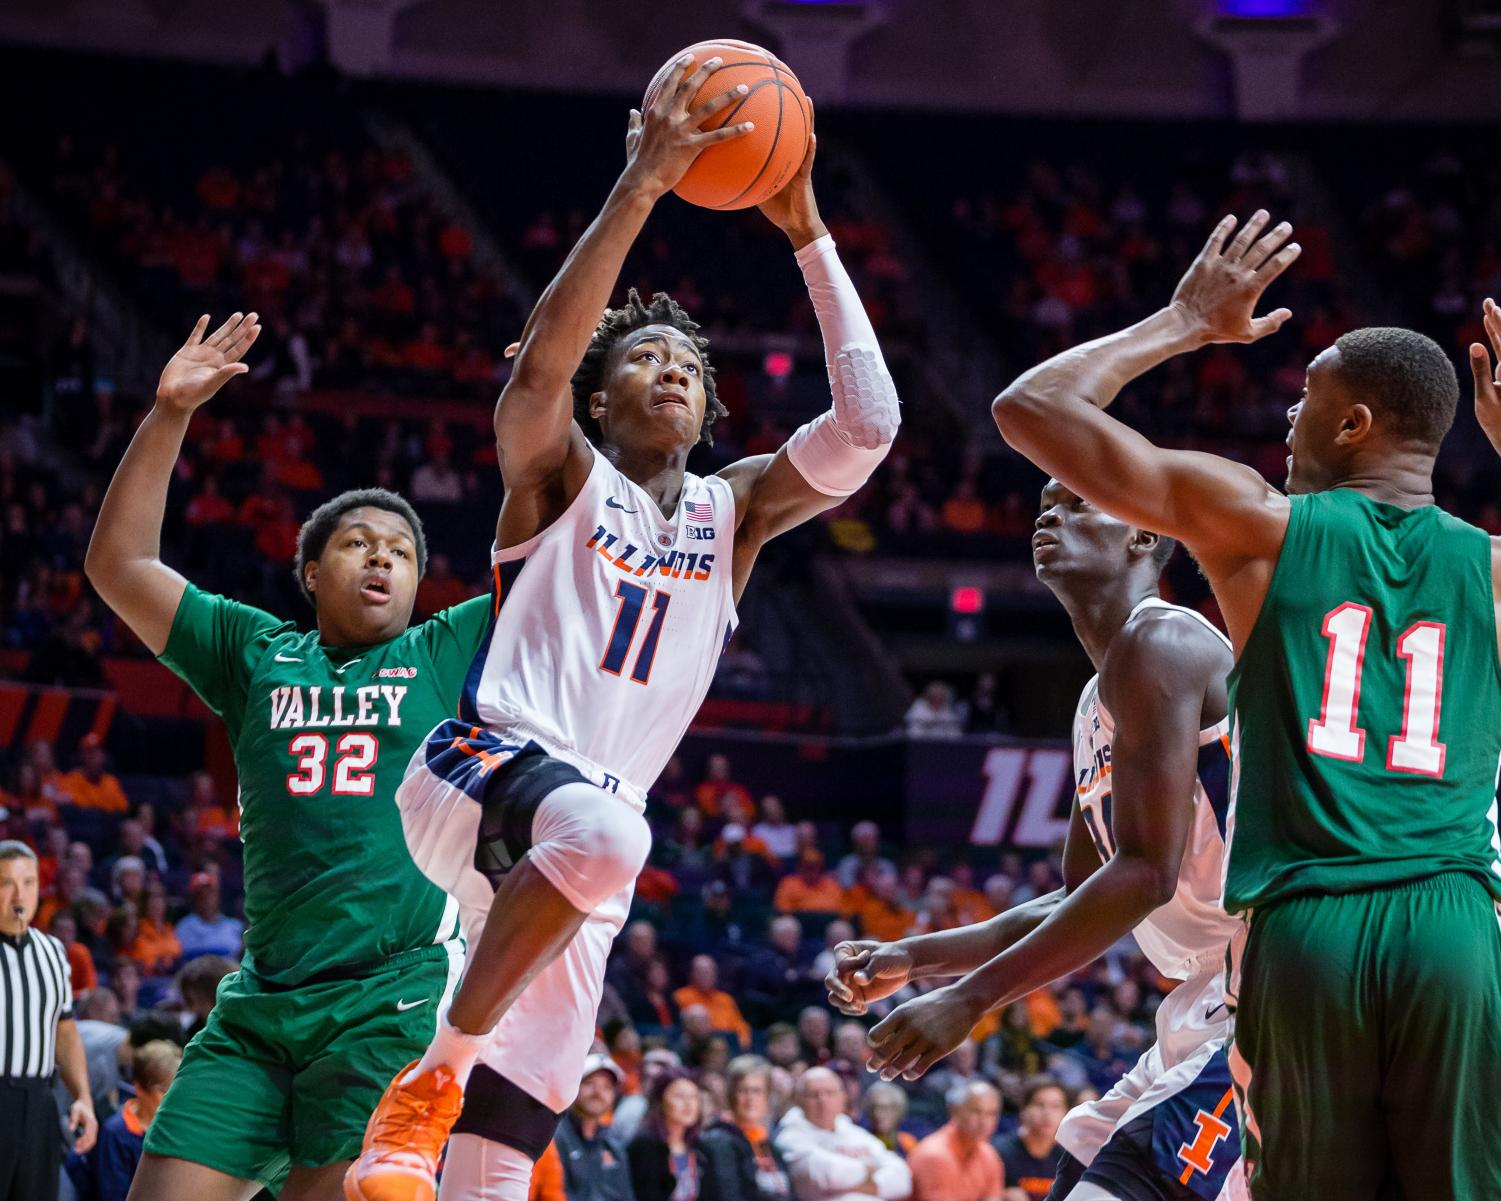 Illinois guard Ayo Dosunmu goes up for a layup during the game against Mississippi Valley State at State Farm Center on Nov. 25. The freshman has been a key part of the Illini's early season start.